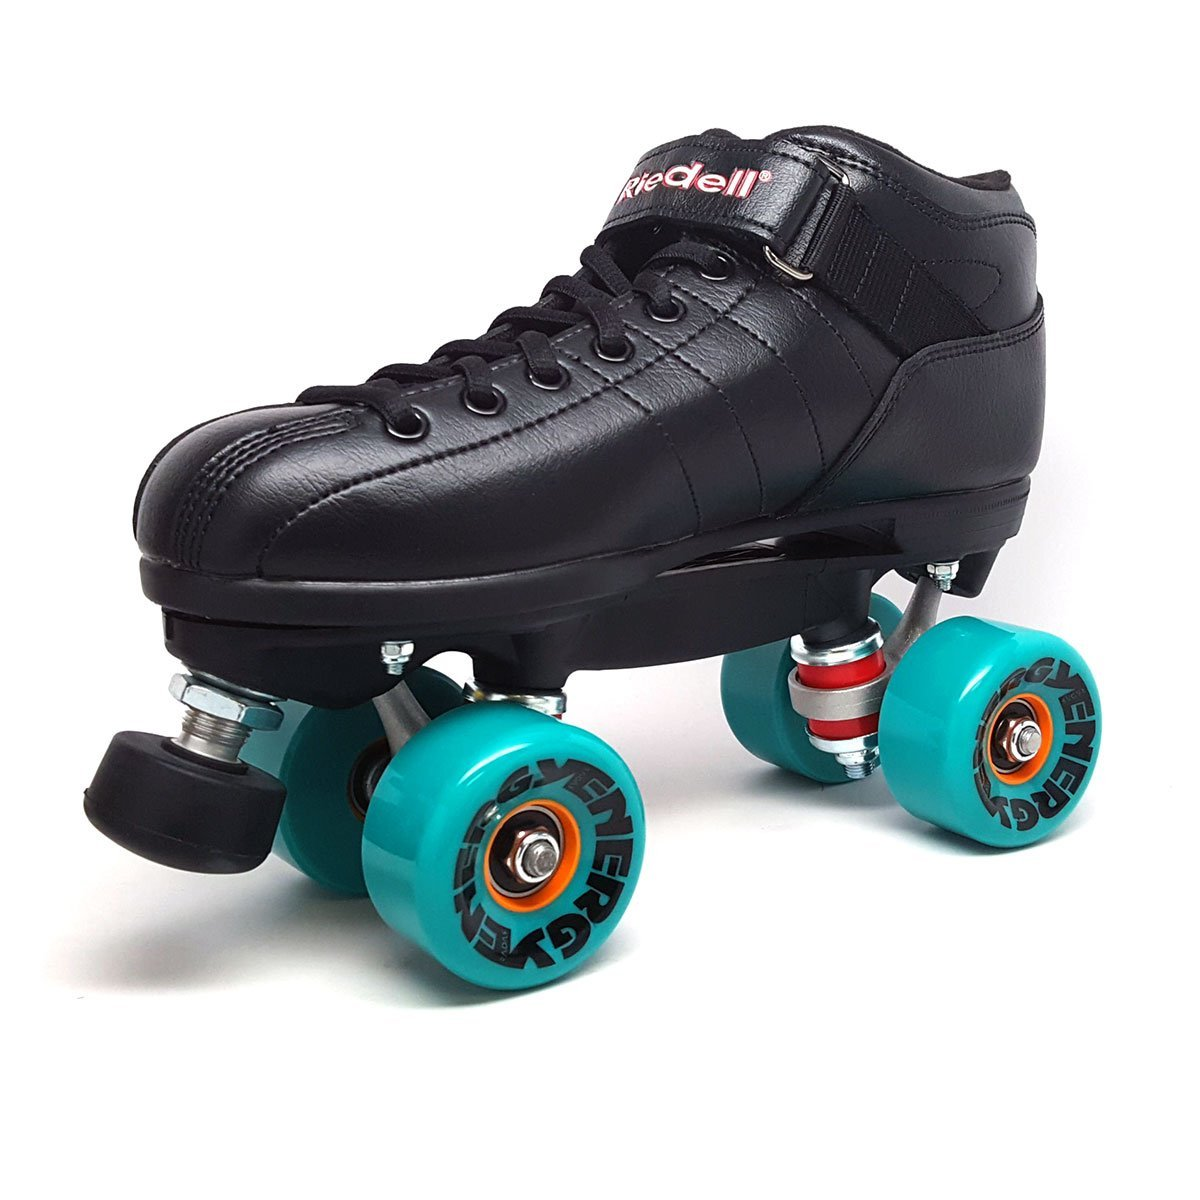 Riedell R3 Energy Aqua Outdoor Quad Roller Derby Speed Skates by Riedell